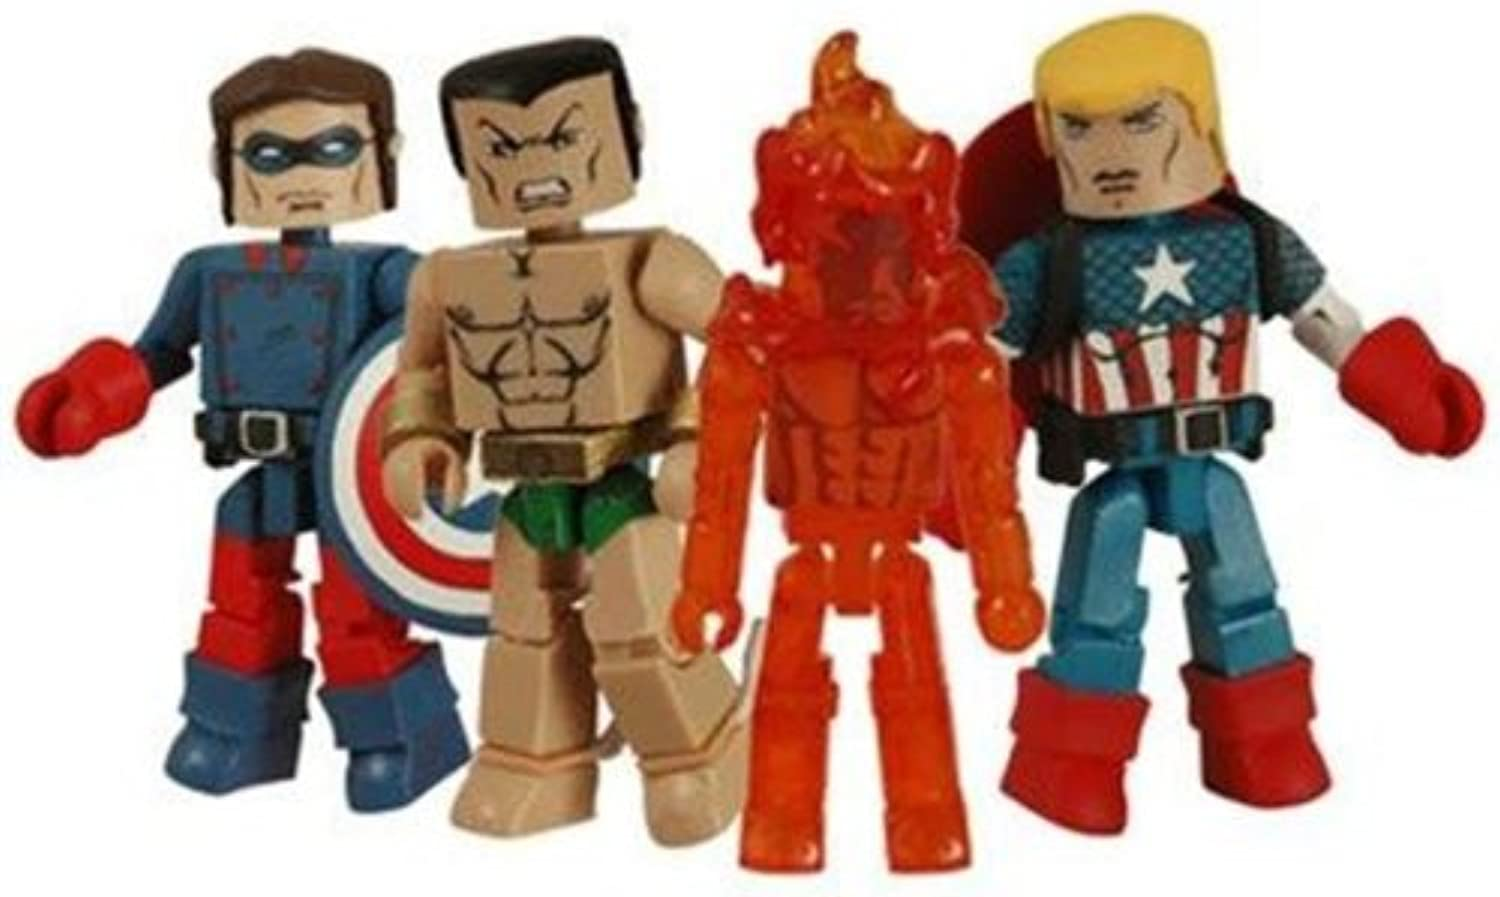 Diamond Select Toys Marvel Minimates 2009 SDCC San Diego ComicCon Exclusive Mini Figure 4Pack Invaders Captain America, Bucky, Human Torch Namor